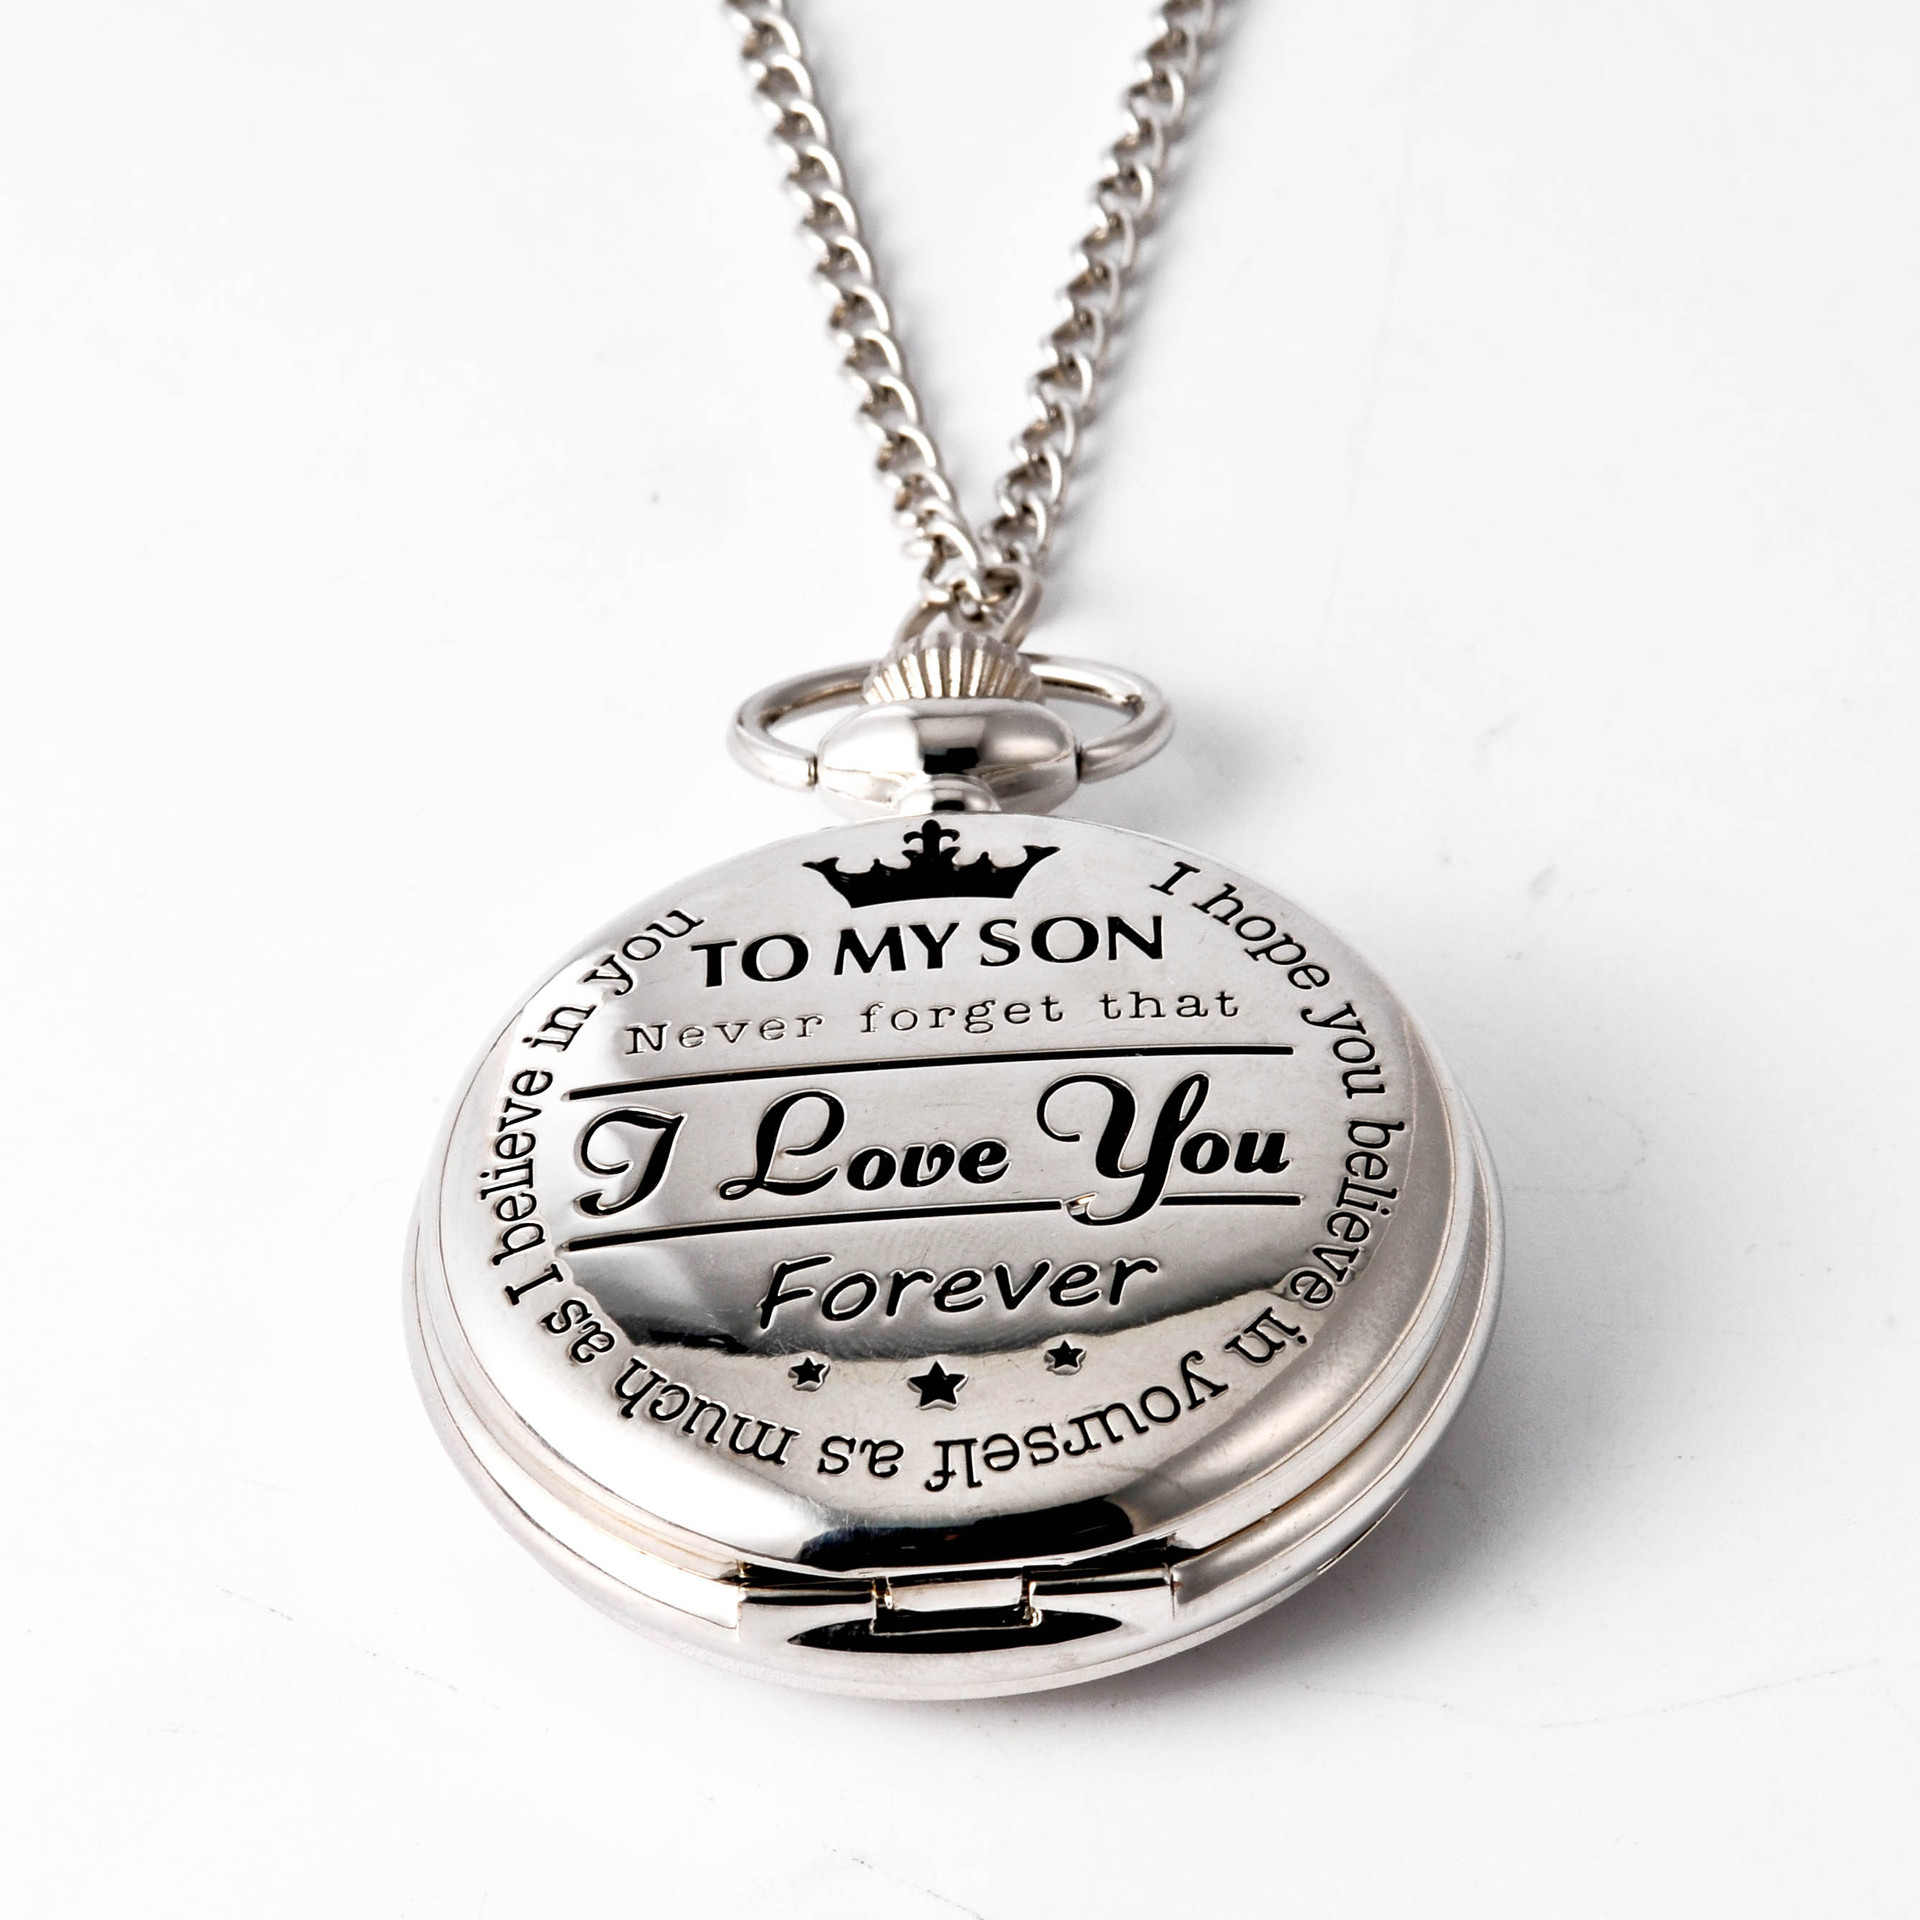 Pocket & Fob Watches To My Son Pocket Watch Necklace I Love You Forever Quartz Watch  for  Son's Gift Watch